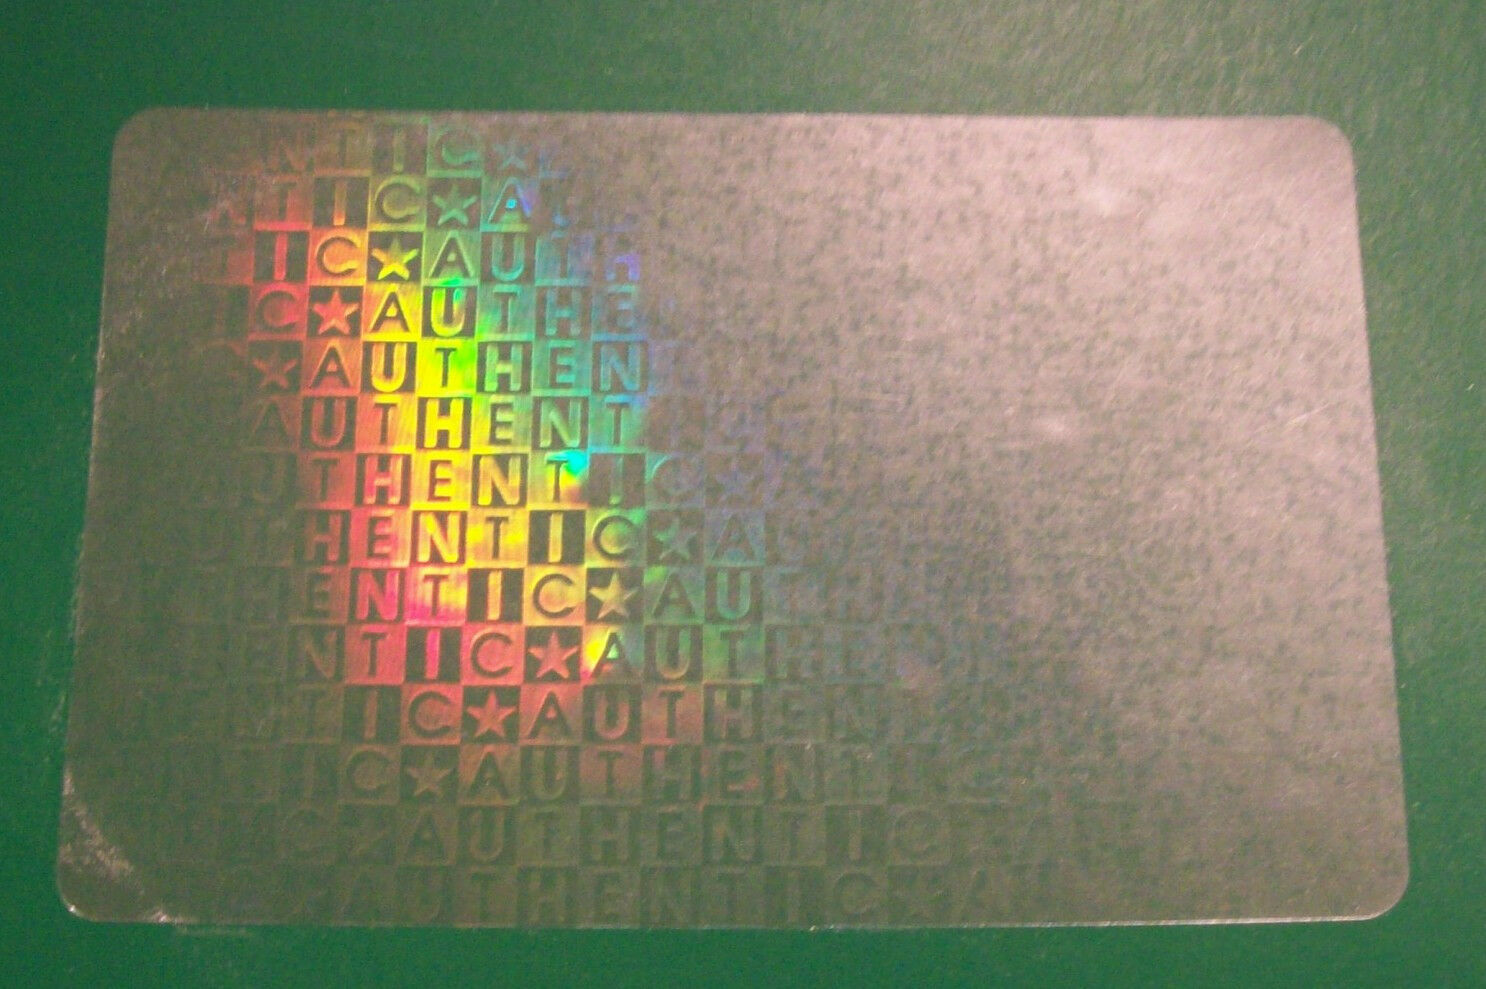 100 Authentic ID Tag Overlay Hologram Tamper Proof Badge  Credit Card, etc